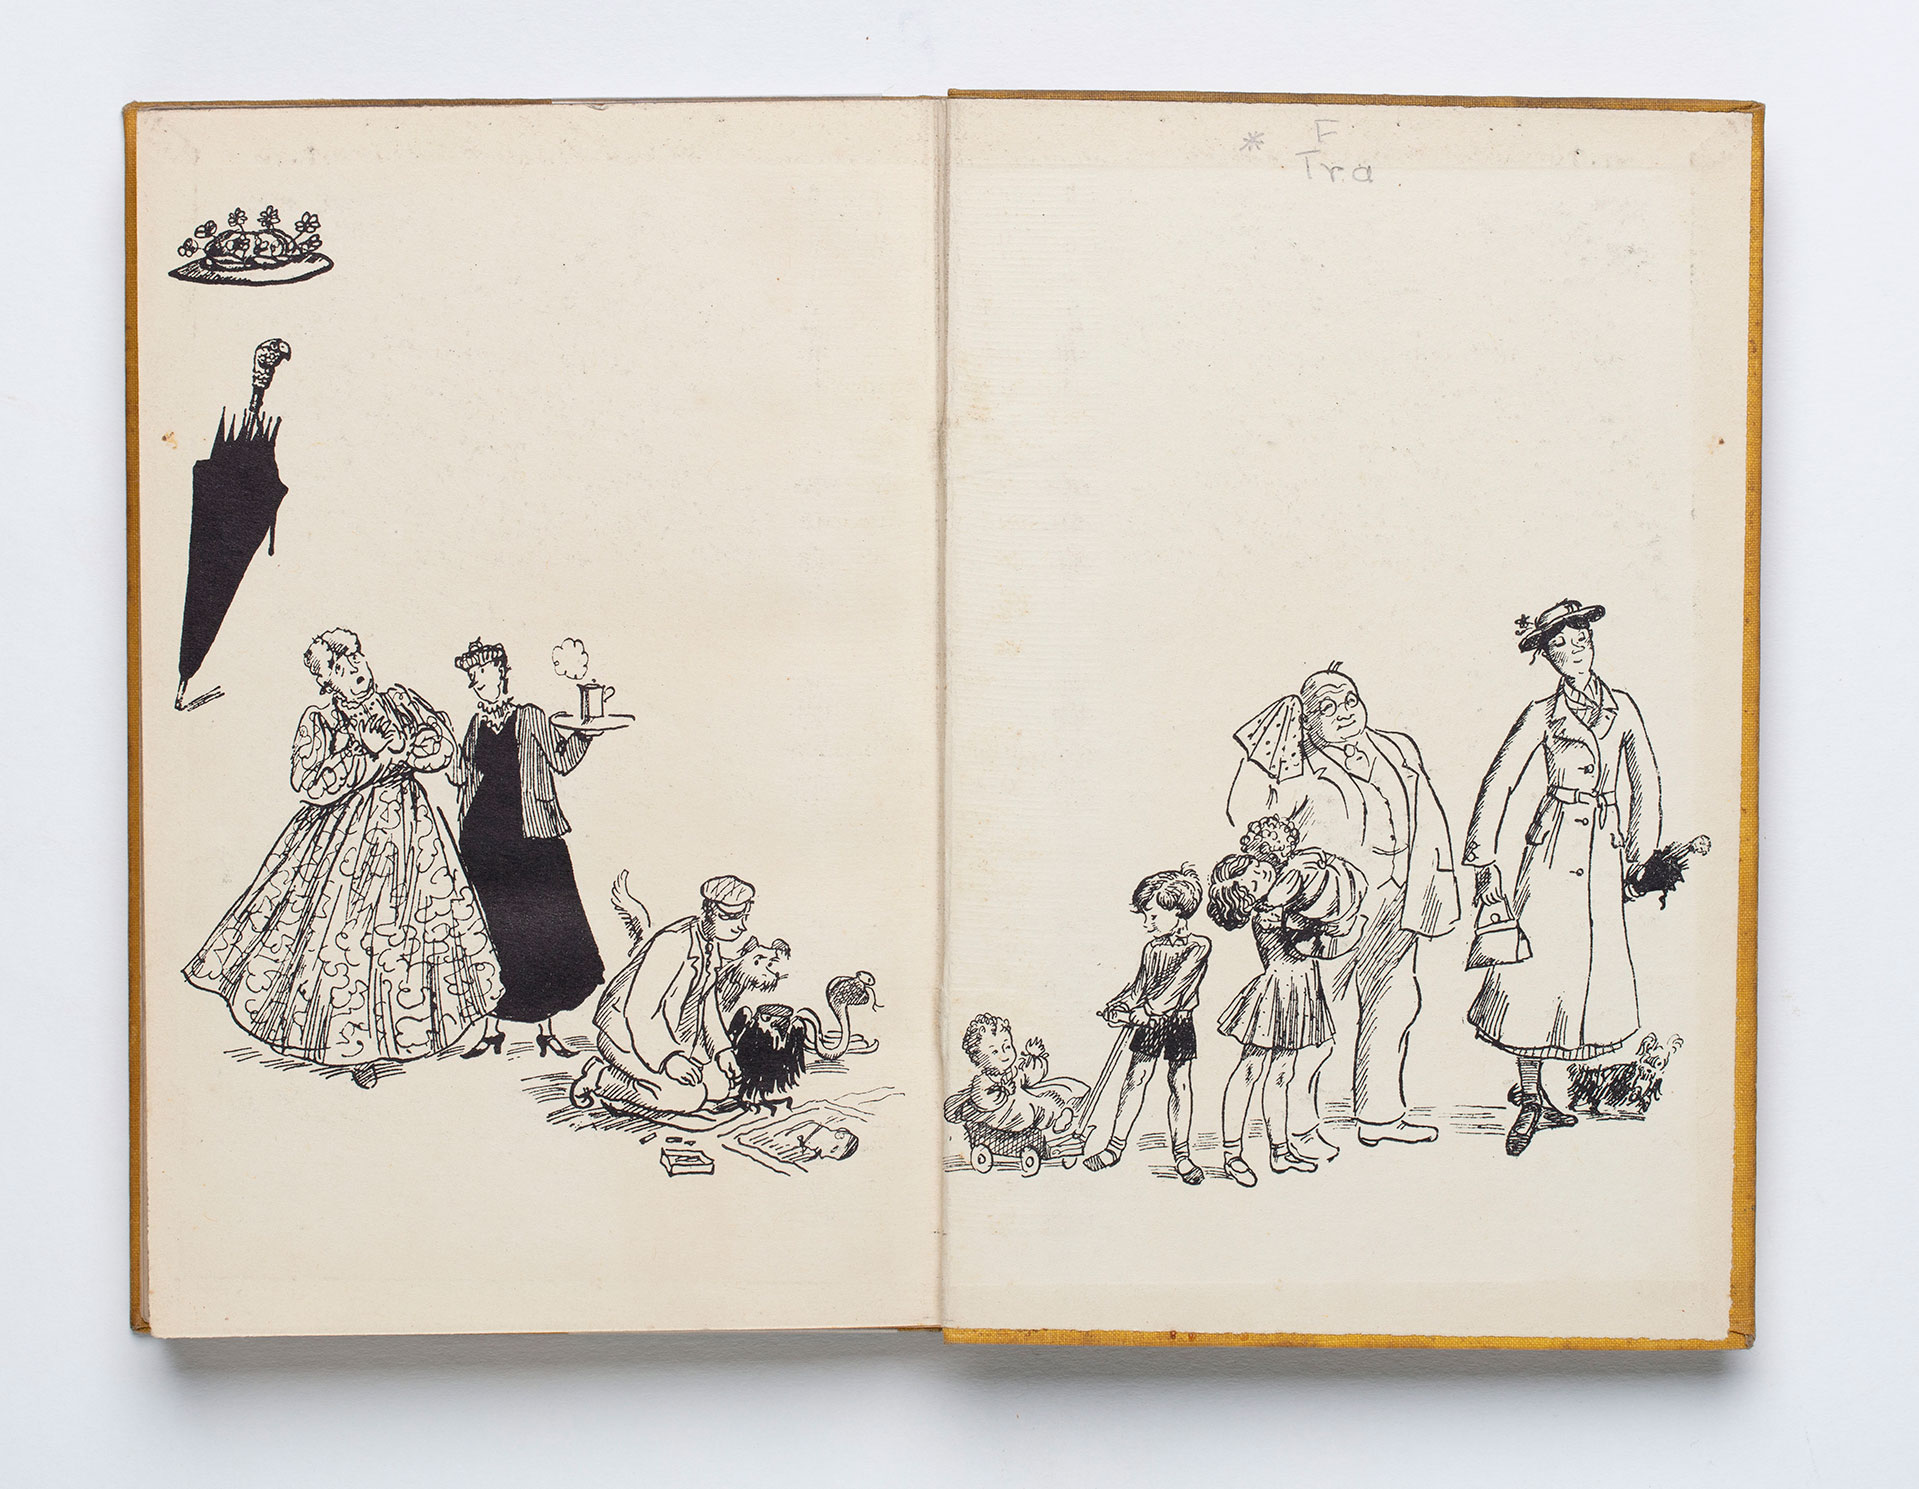 Endpapers with an illustration from Mary Poppins.